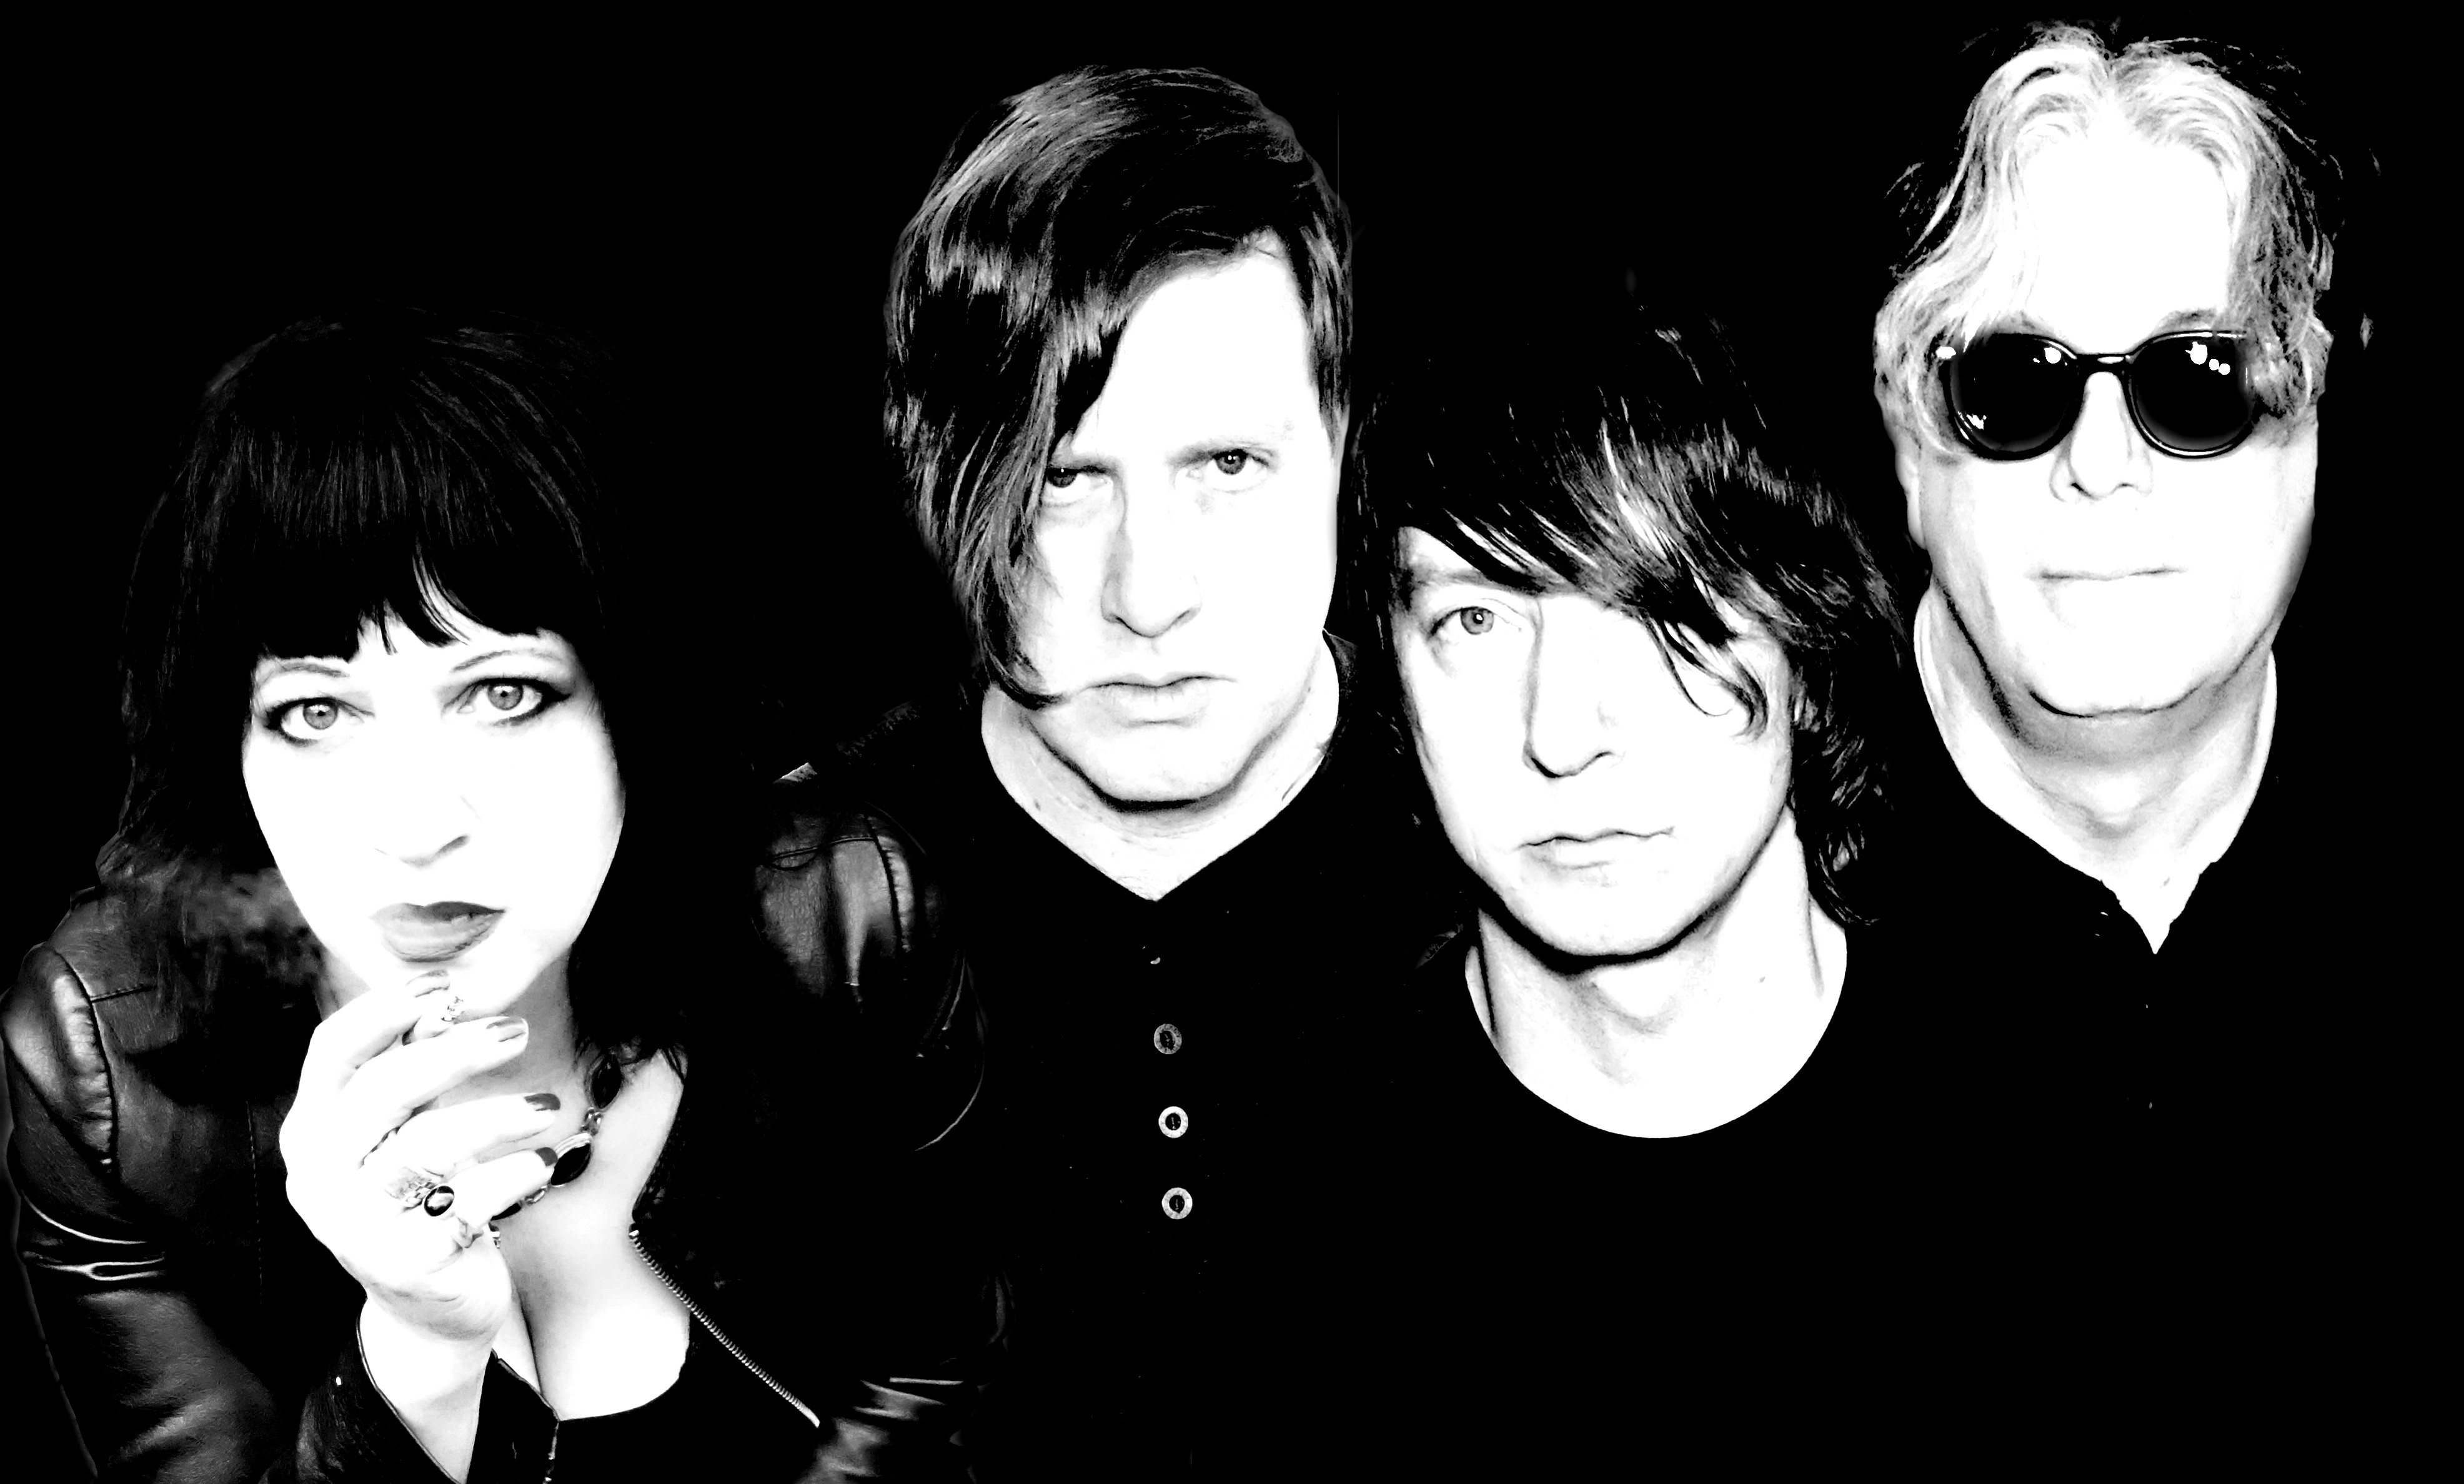 A condensed version of this conversation between Lydia Lunch and Thurston  Moore, held at the Naropa University's Jack Kerouac School of Disembodied  Poetics ...